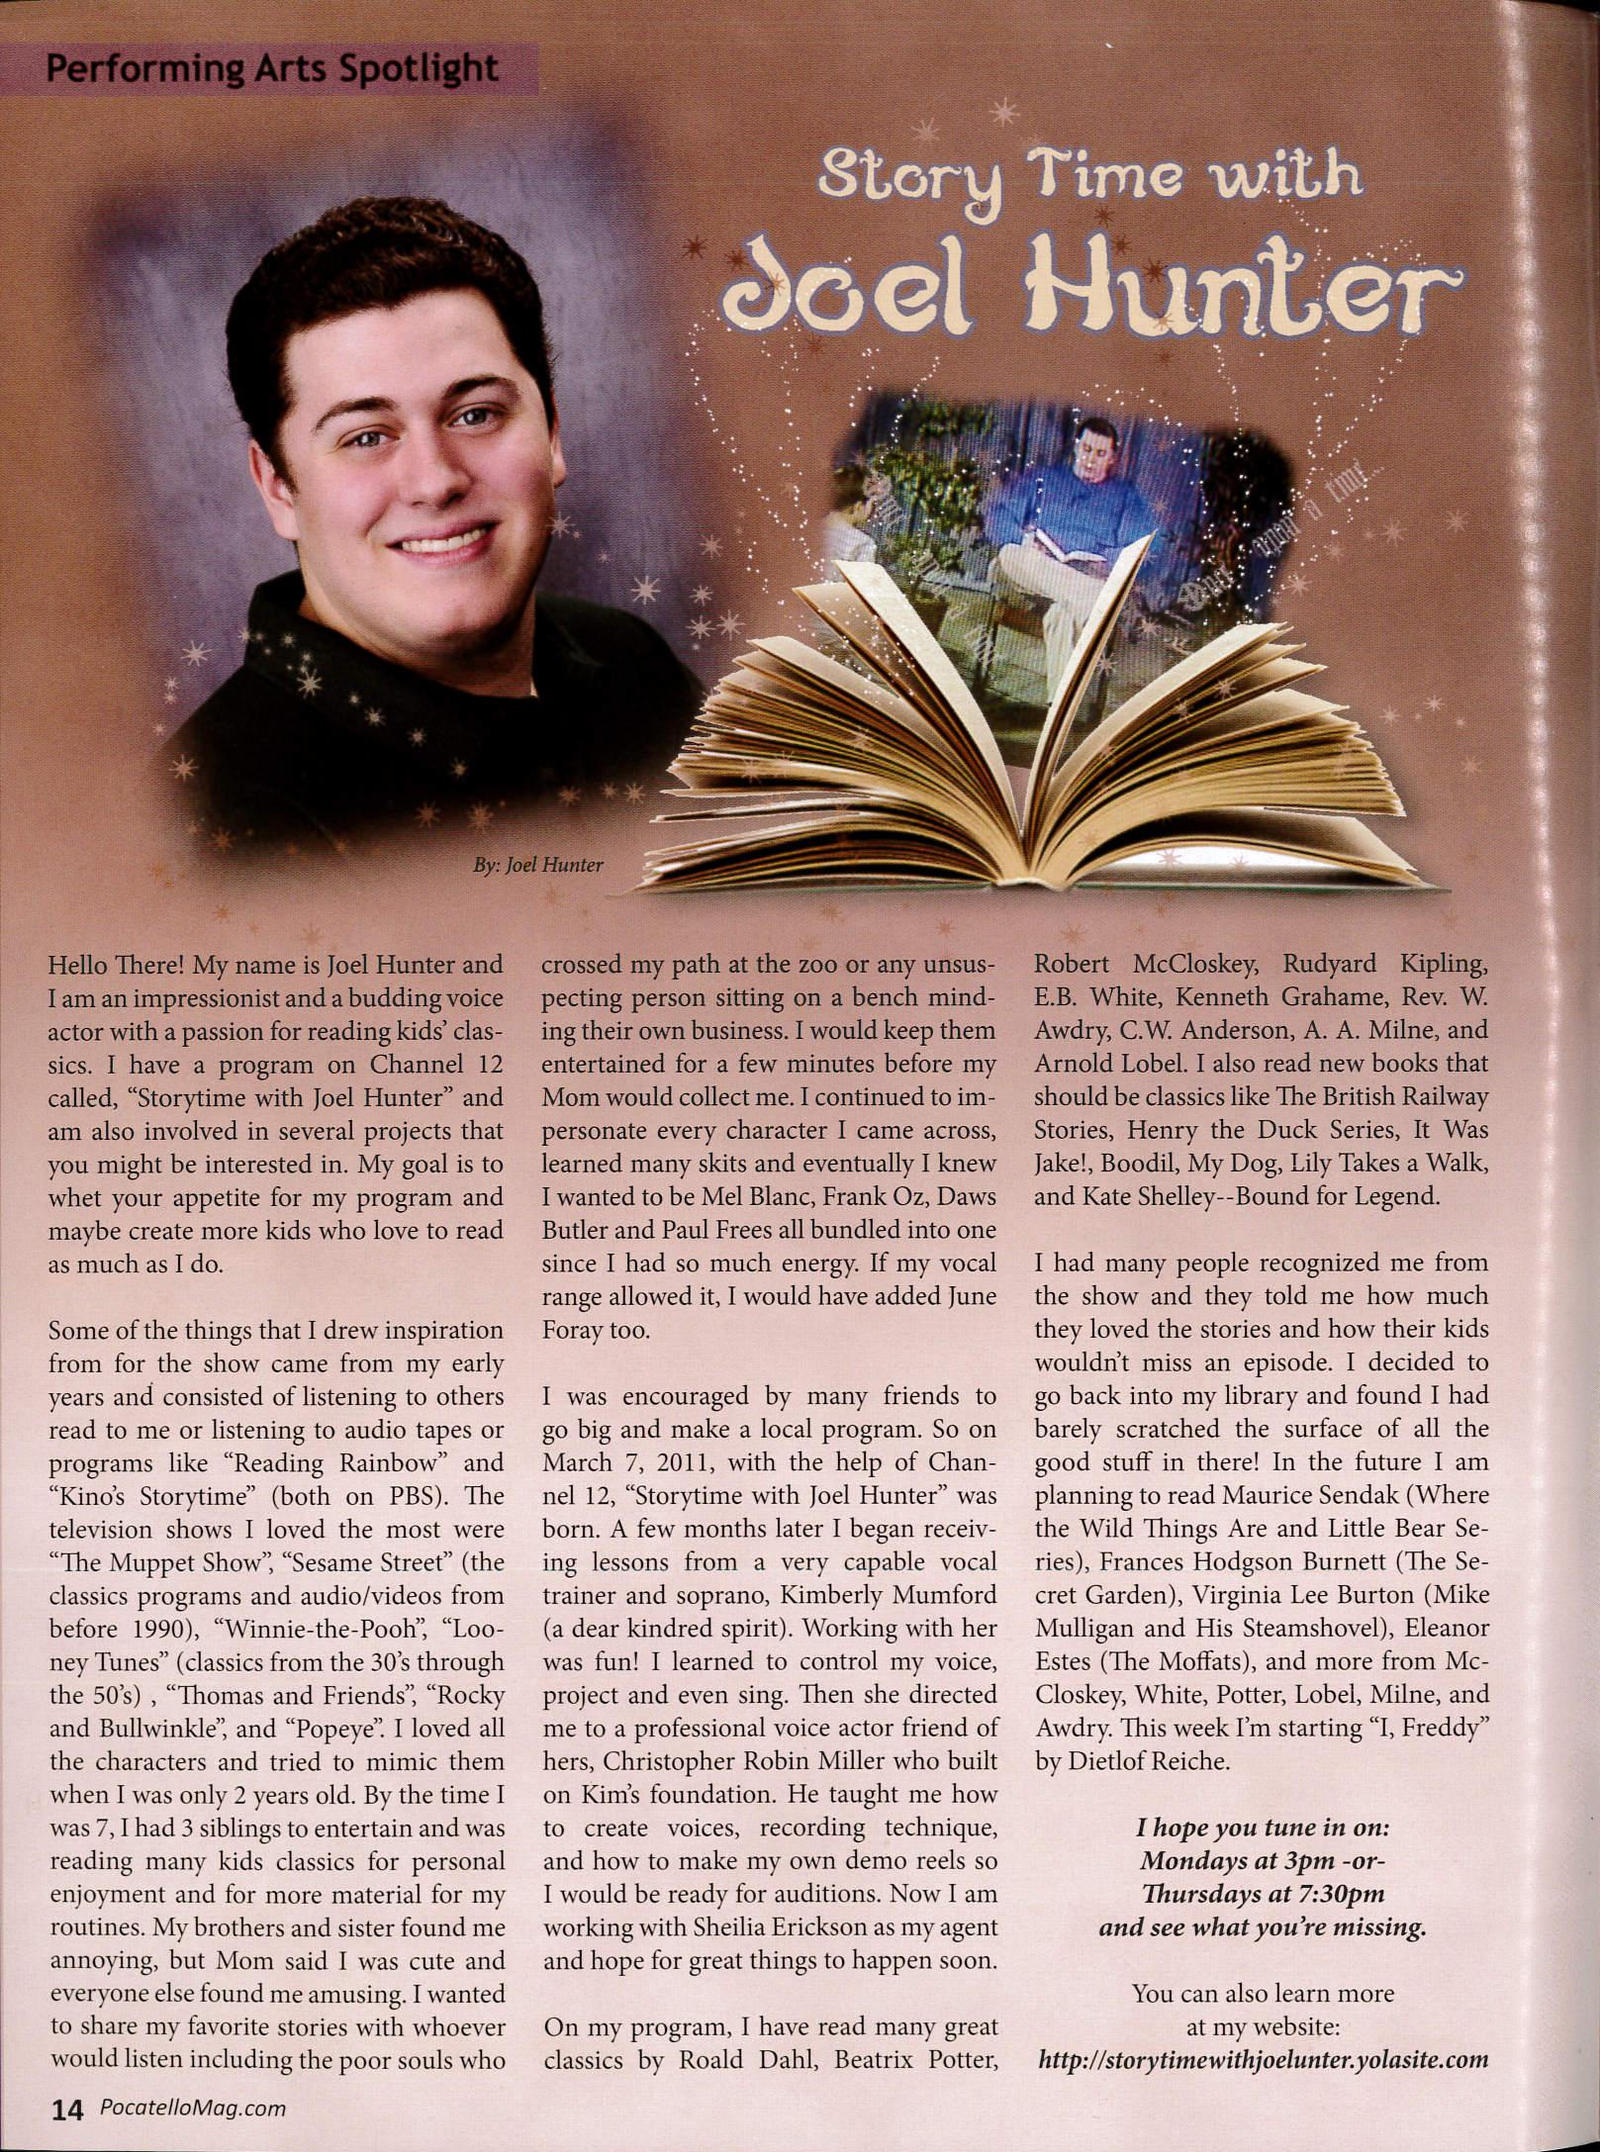 Storytime with Joel Hunter Article by GeebMachine